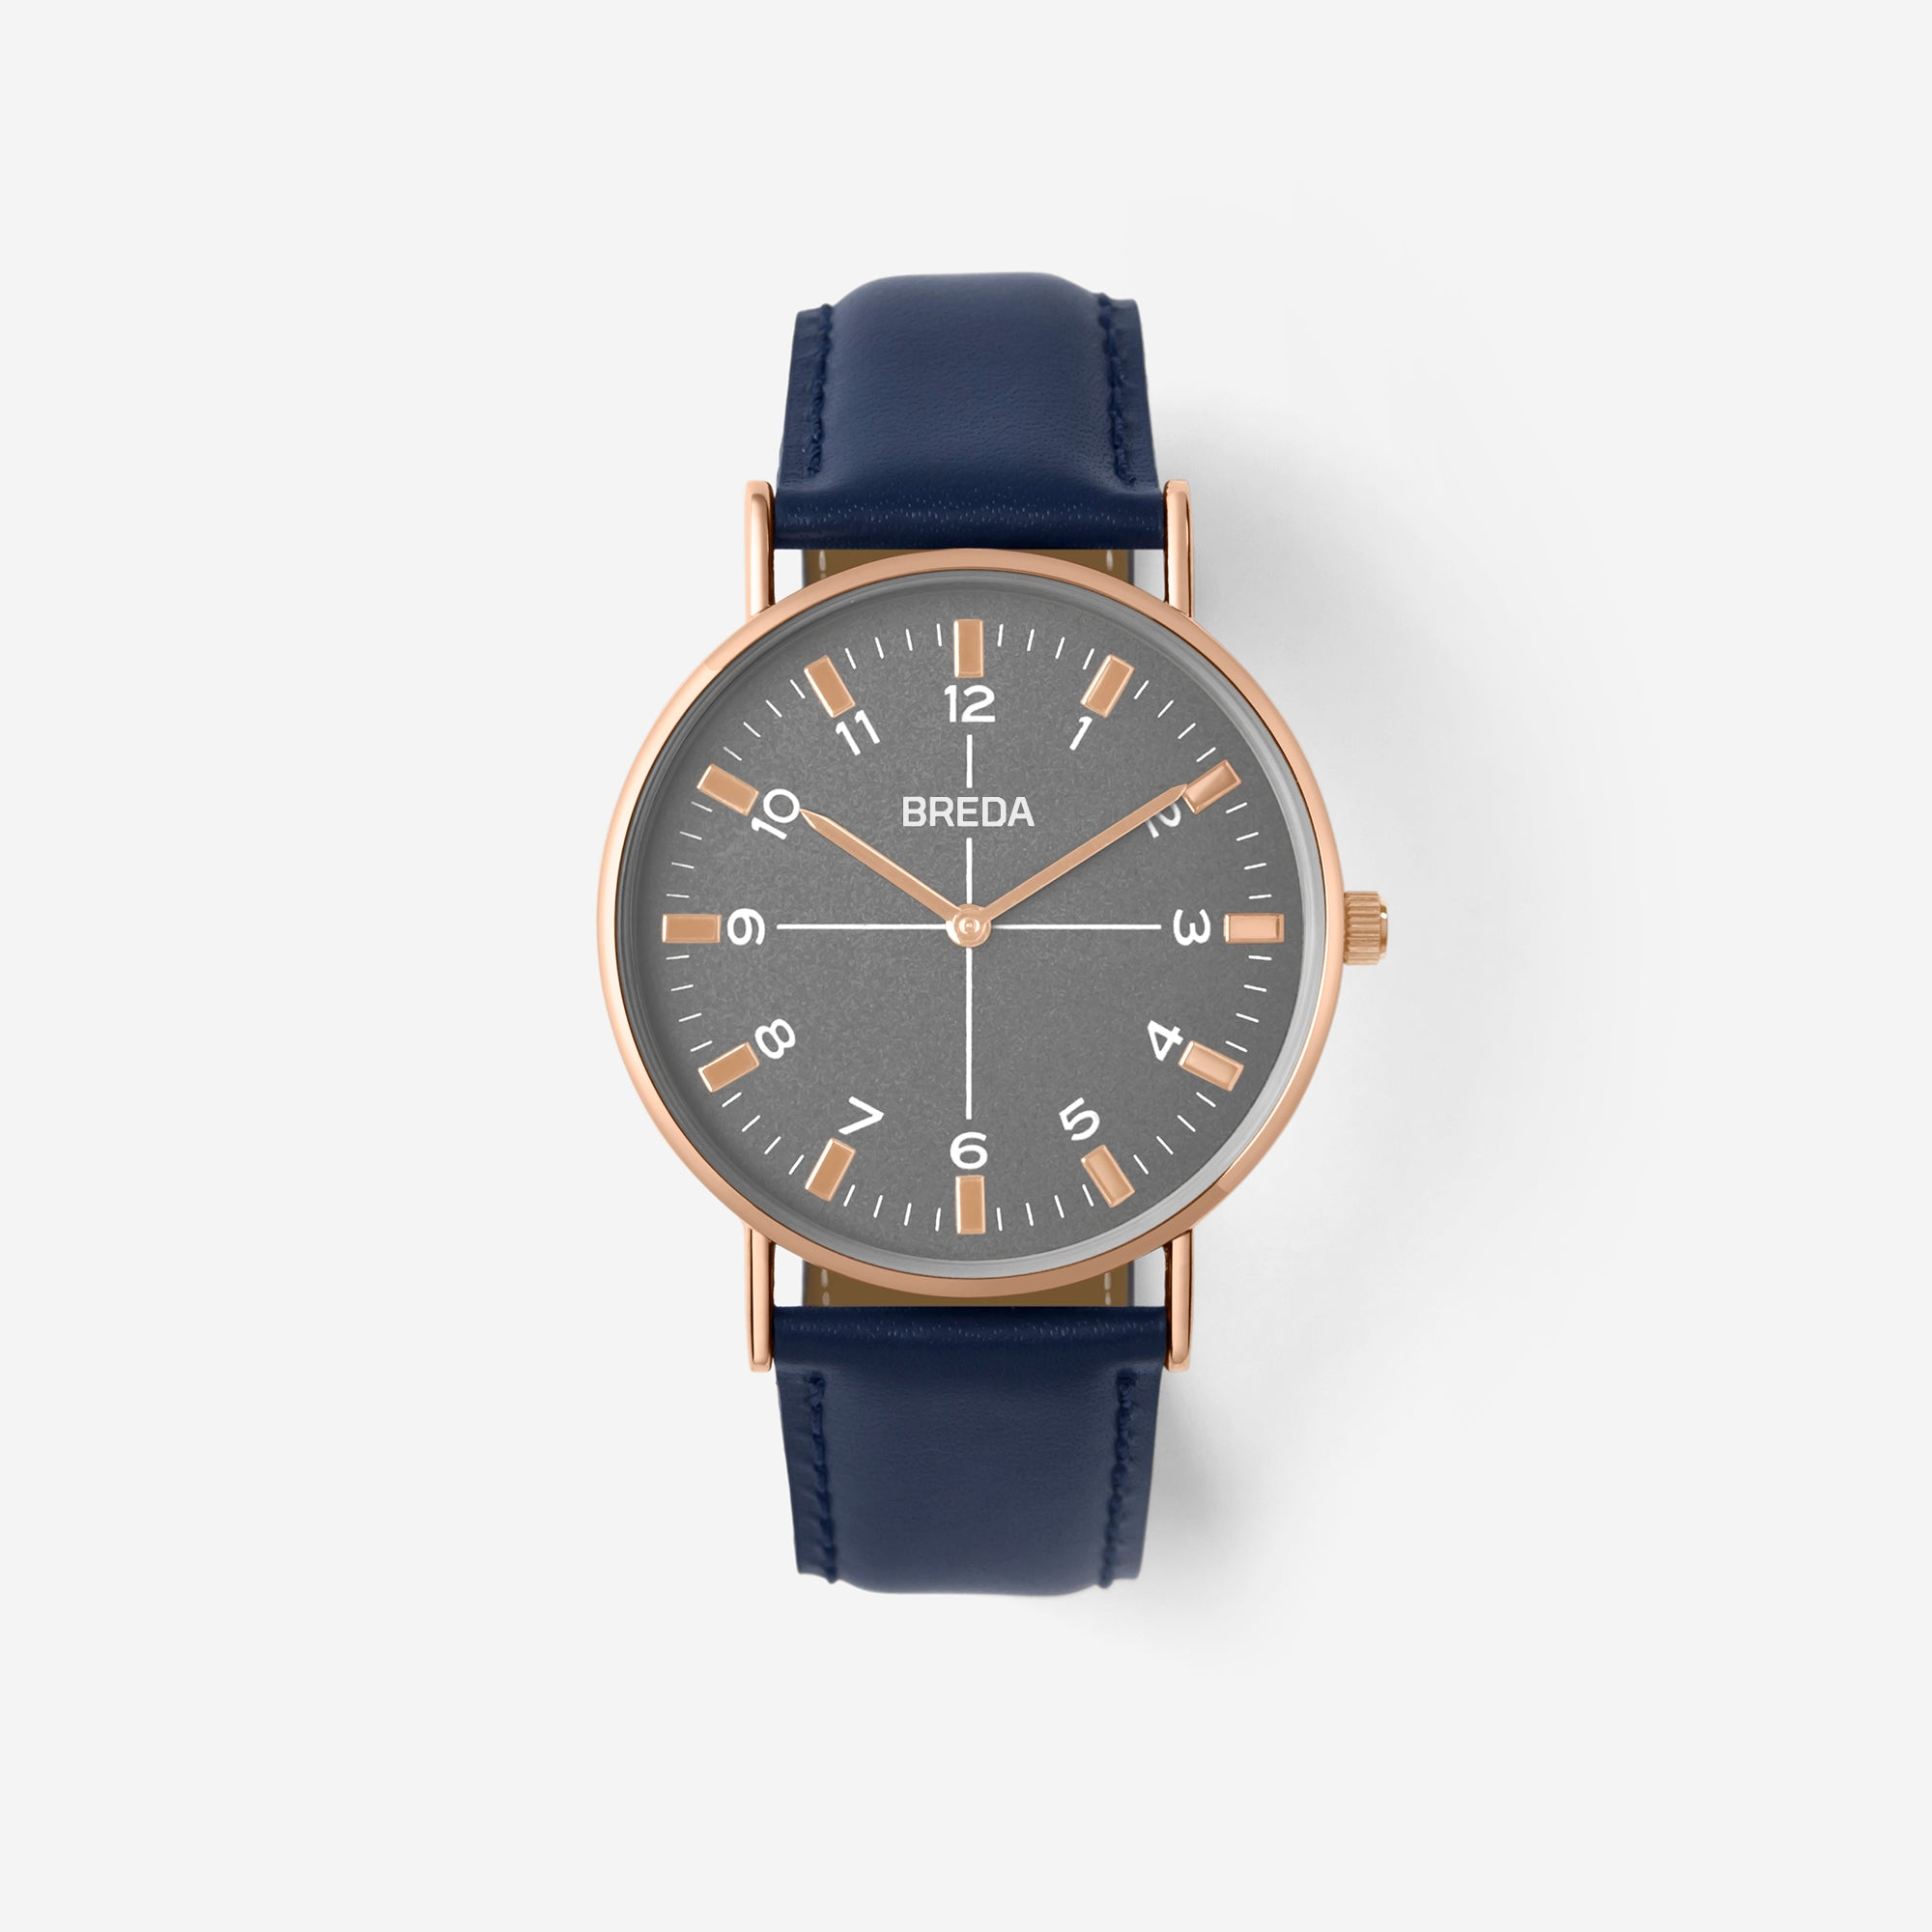 //cdn.shopify.com/s/files/1/0879/6650/products/breda-belmont-1646h-rosegold-navy-watch-front_1024x1024.jpg?v=1543250464